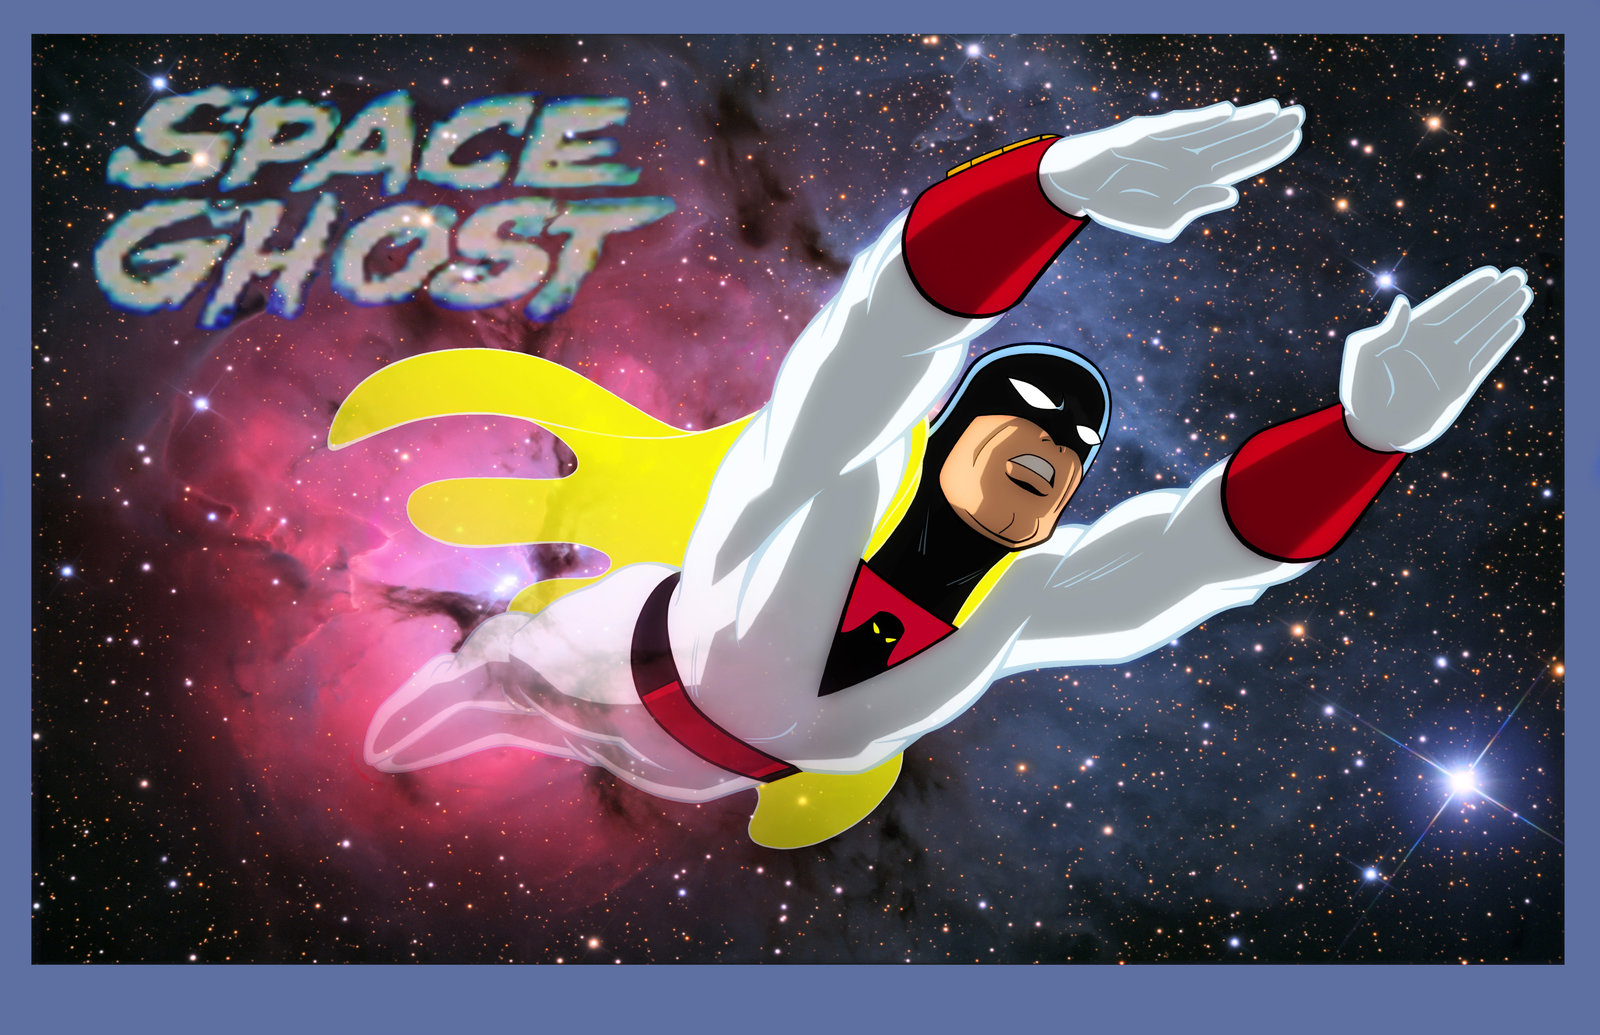 HQ Spaceghost Wallpapers | File 349.3Kb